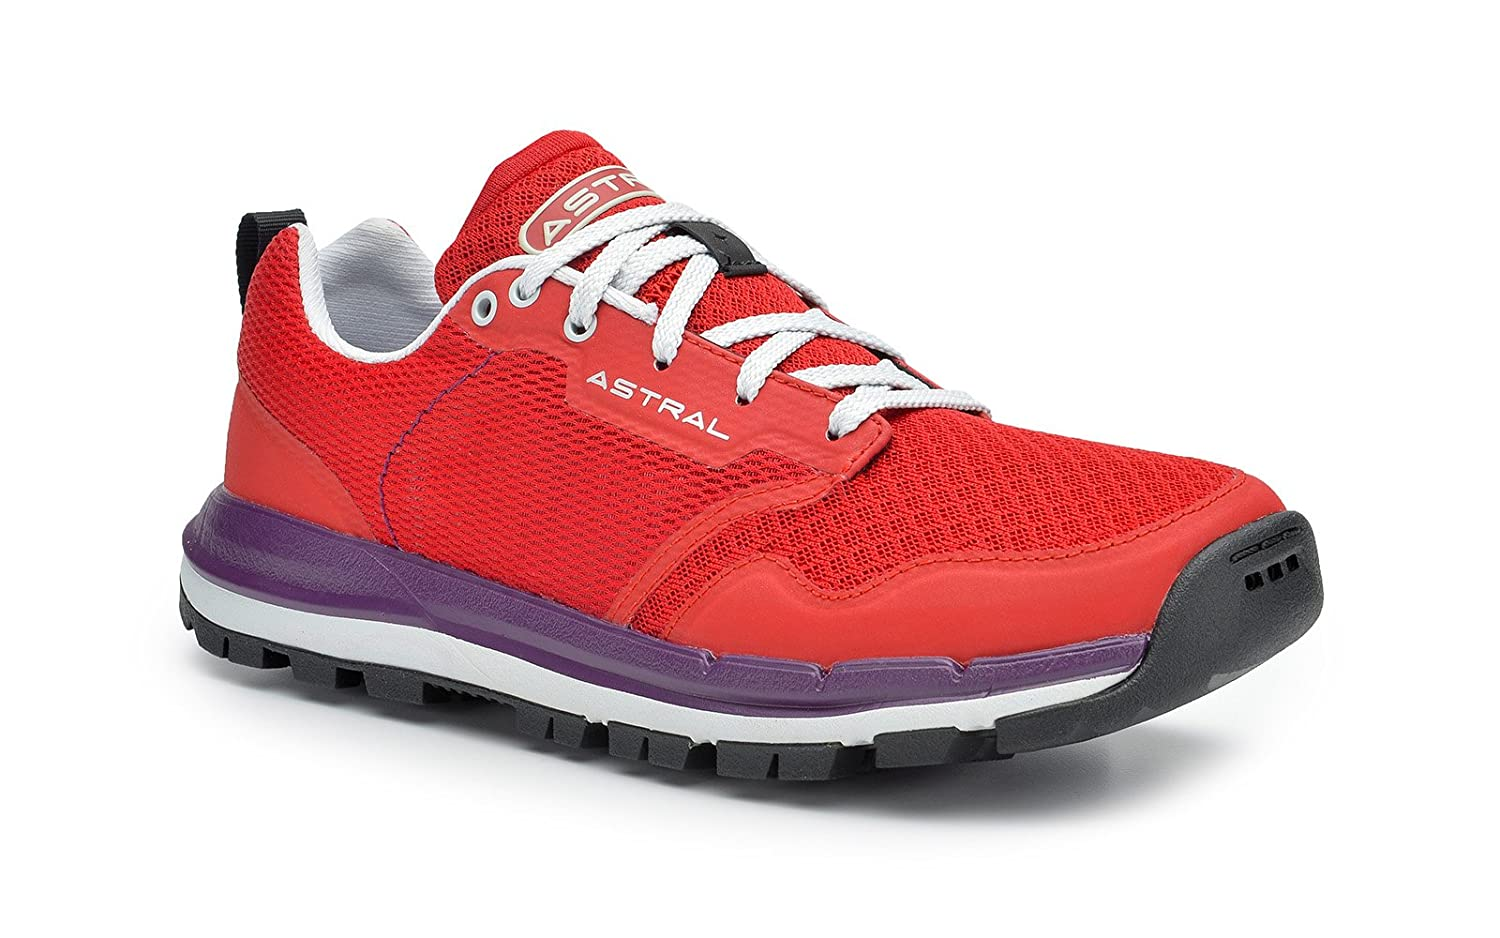 f8ee70a6017f Amazon.com  Astral TR1 Mesh Women s Water Ultra-Light Hiking Shoe - Rosa  Red - 10.5  Sports   Outdoors